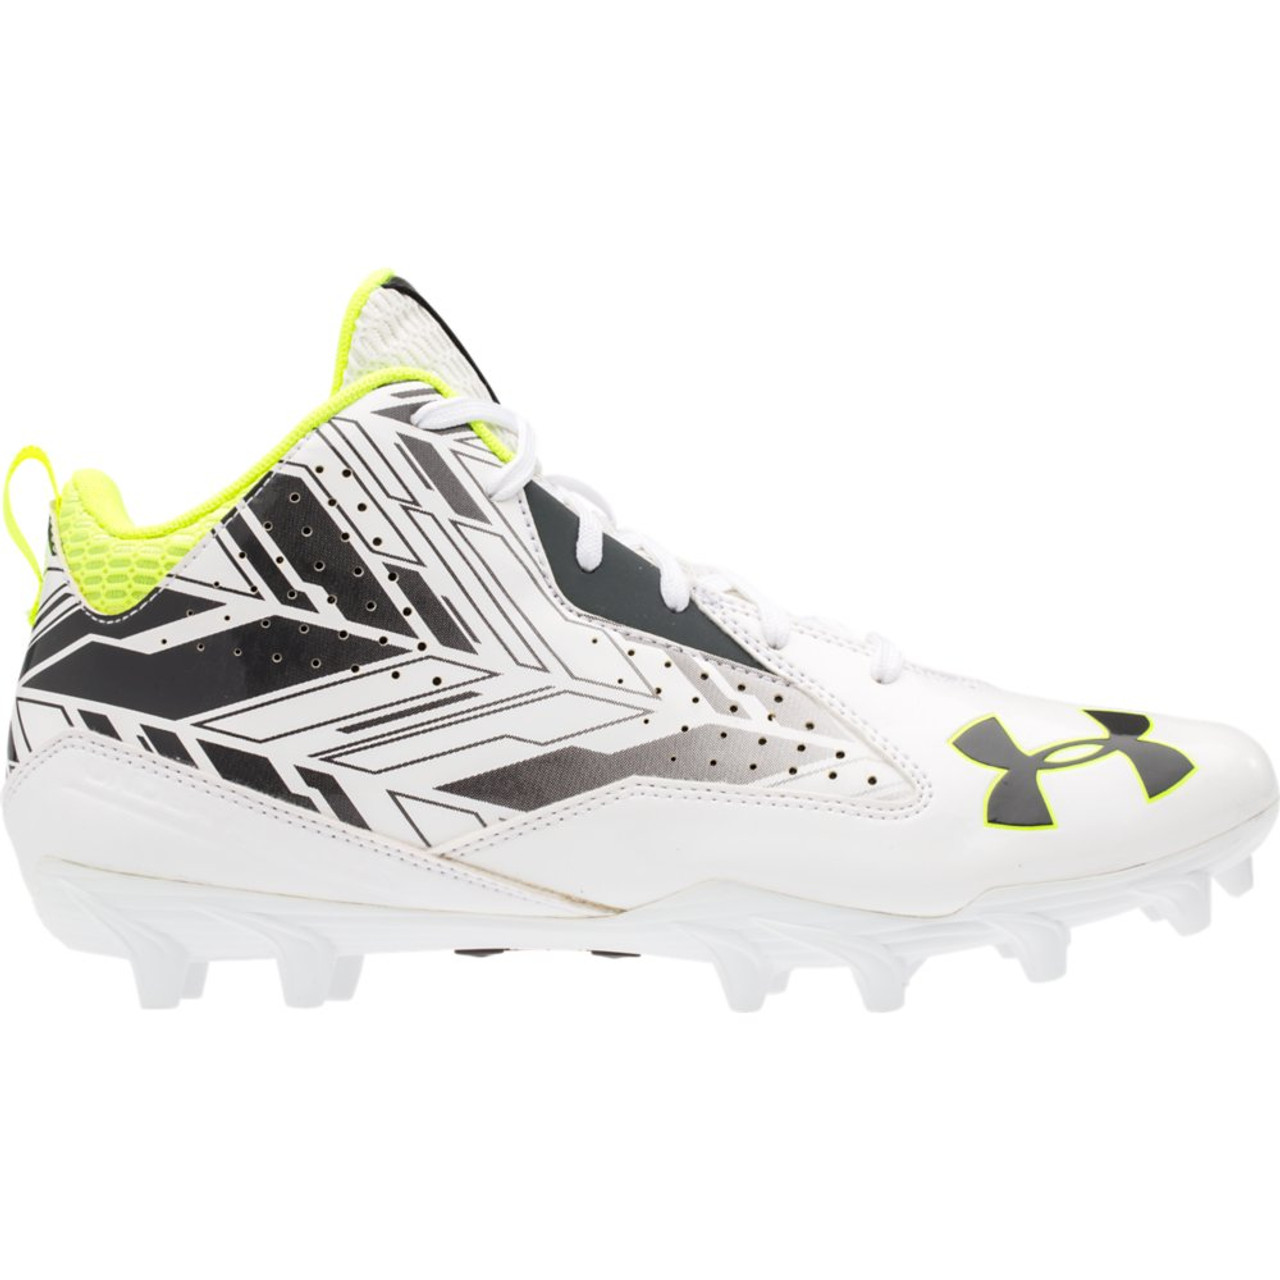 2243a1db7a1a Men's Under Armour Ripshot Mid MC Lacrosse Cleat - Sieverts Sporting Goods